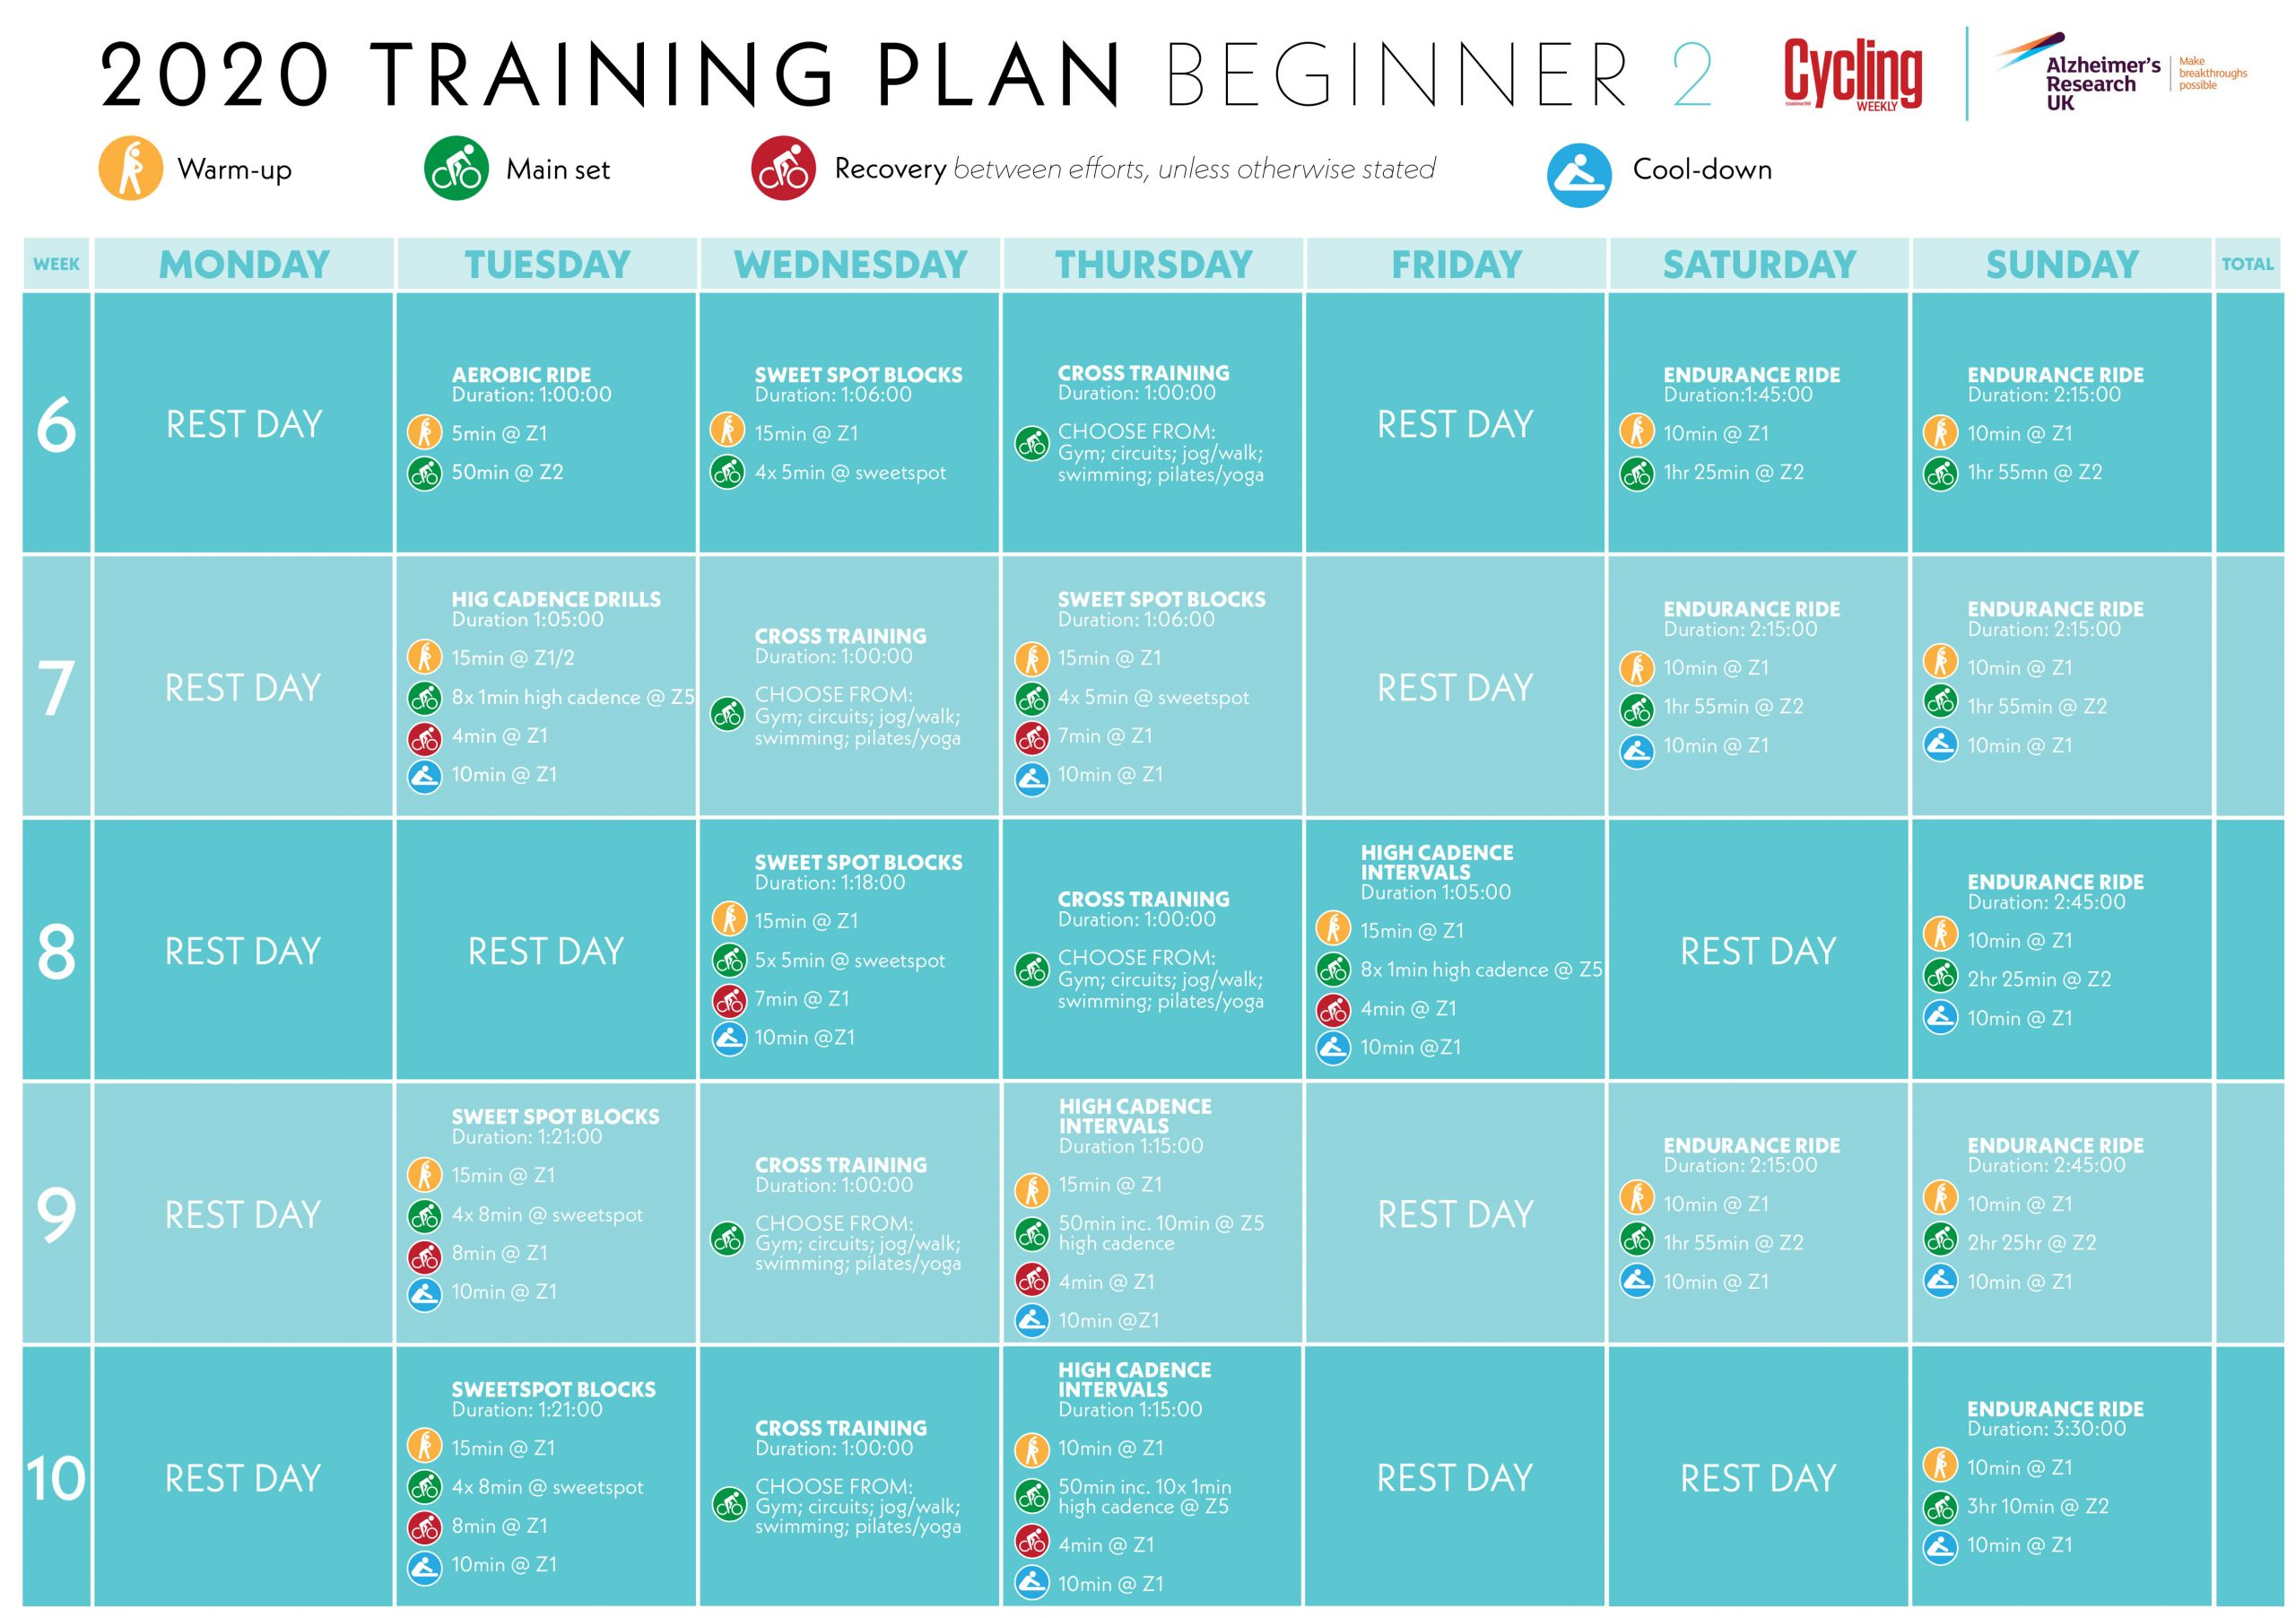 Cycling Training Plan For Beginners Cycling Weekly